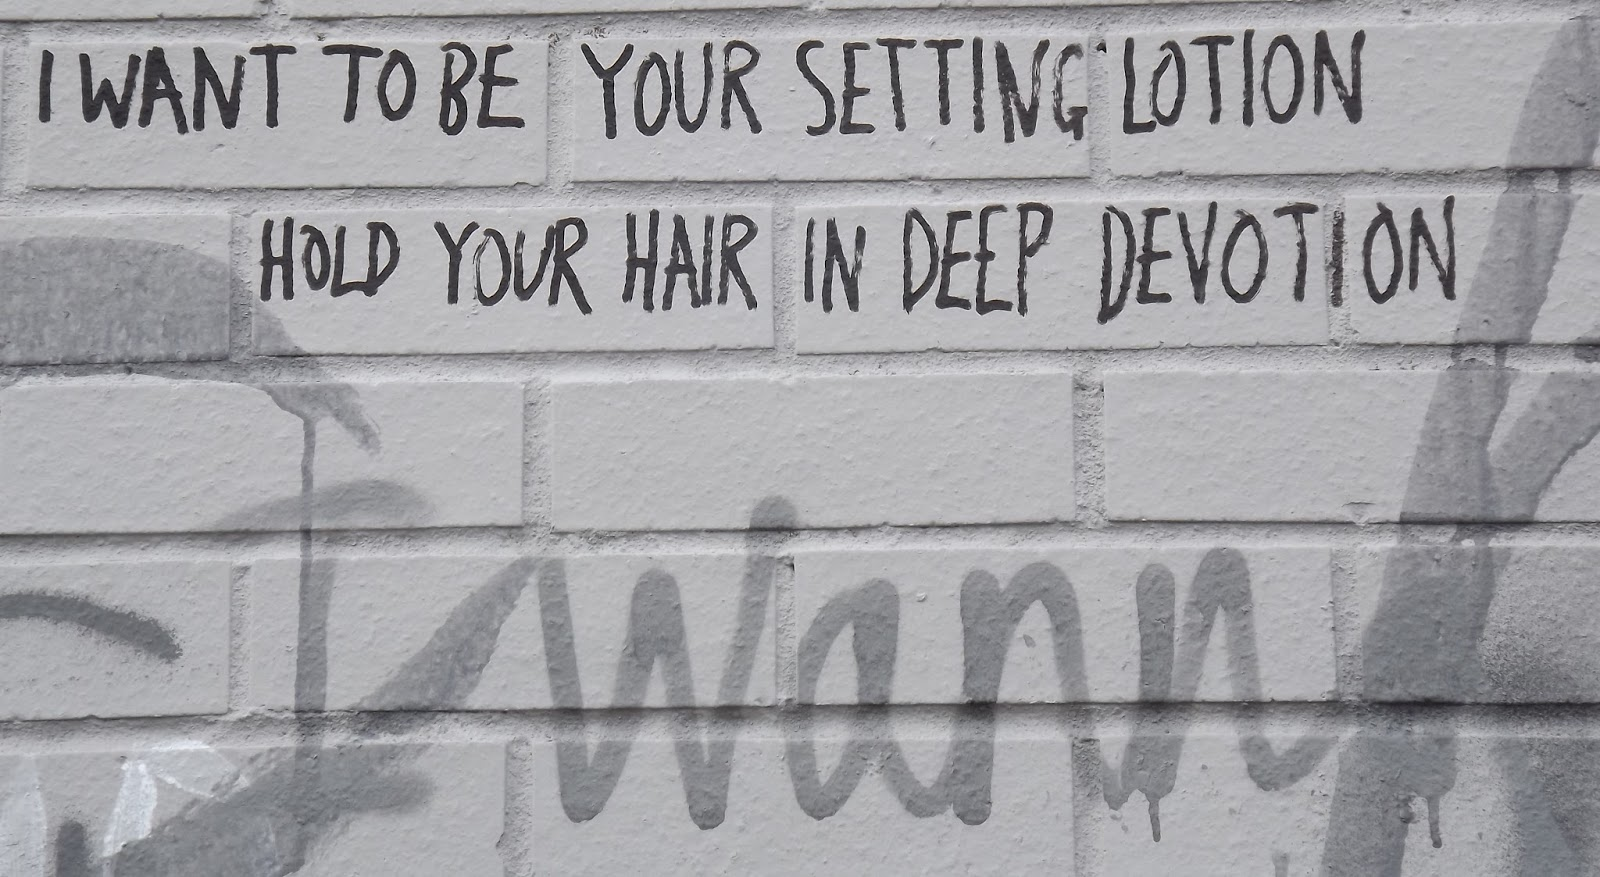 Hold Your Hair In Deep Devotion